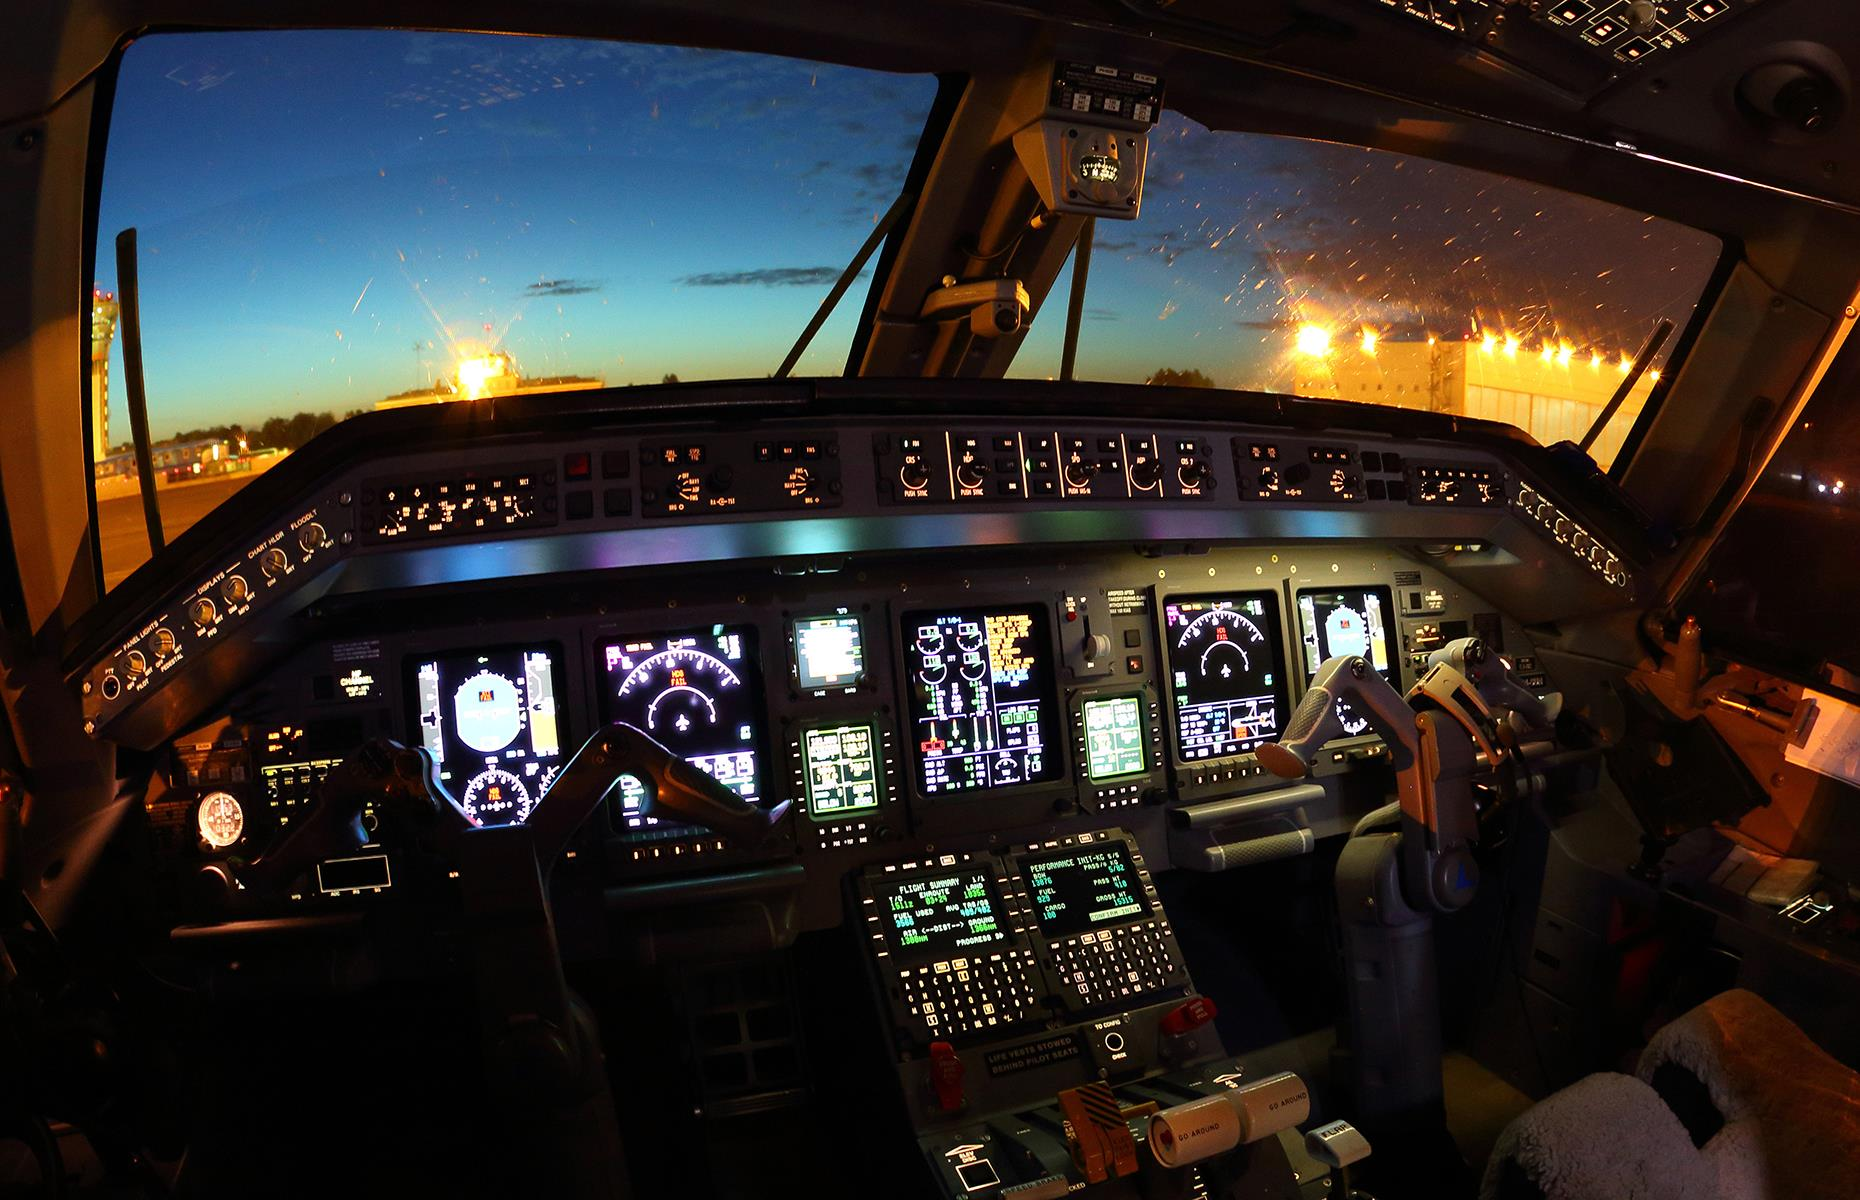 """Slide 43 of 63: Pete says, """"An entire flight could be operated by auto-pilot, but pilots usually perform manual take-offs and landings. An aircraft can be landed automatically all the way to a complete stop on the runway. In the UK, the first autonomous airliner is being tested so in the future we could see pilot-less airliners."""" But Jonny notes: """"Autopilot won't replace a pilot in commercial aviation because it can't problem solve in an emergency. For that you need a well-trained pilot."""""""